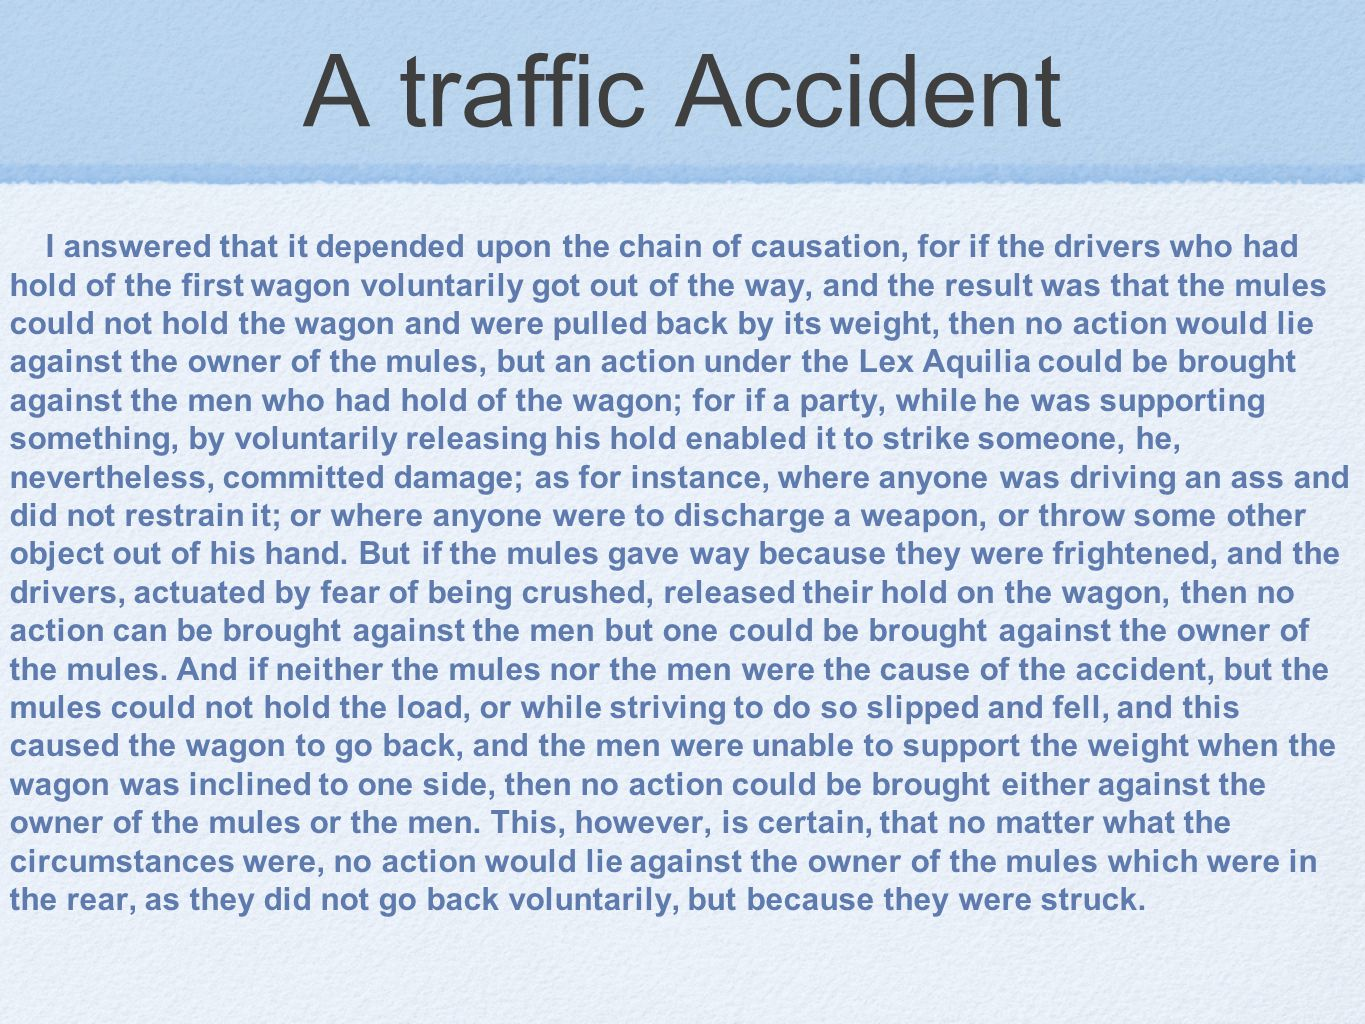 A traffic Accident I answered that it depended upon the chain of causation, for if the drivers who had hold of the first wagon voluntarily got out of the way, and the result was that the mules could not hold the wagon and were pulled back by its weight, then no action would lie against the owner of the mules, but an action under the Lex Aquilia could be brought against the men who had hold of the wagon; for if a party, while he was supporting something, by voluntarily releasing his hold enabled it to strike someone, he, nevertheless, committed damage; as for instance, where anyone was driving an ass and did not restrain it; or where anyone were to discharge a weapon, or throw some other object out of his hand.